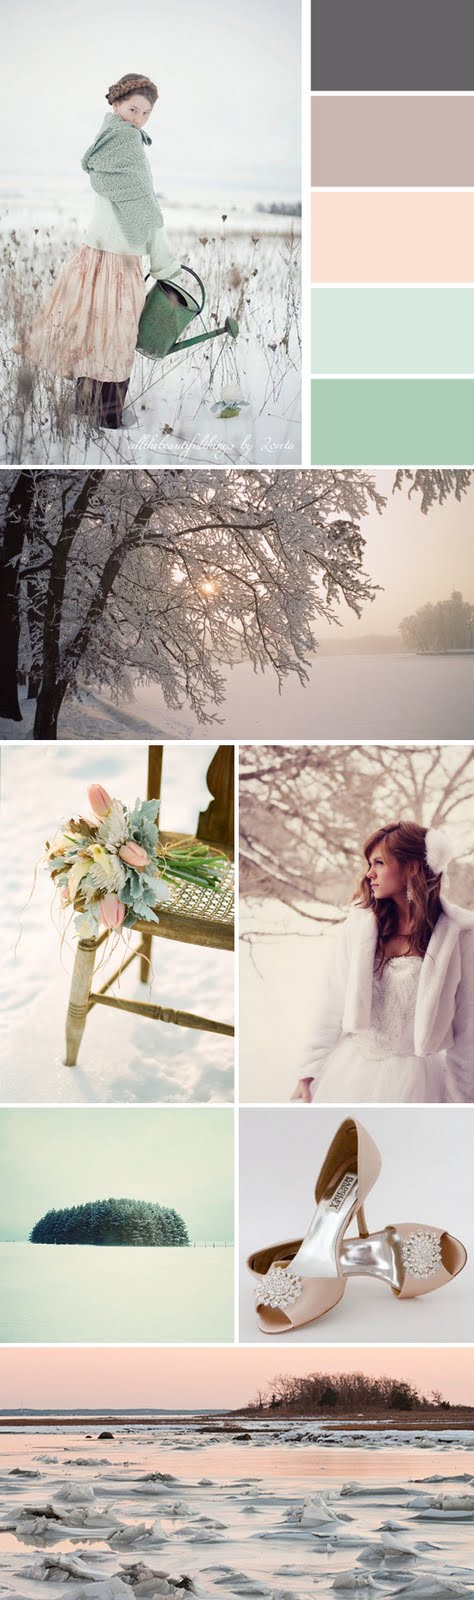 Winter wedding color story